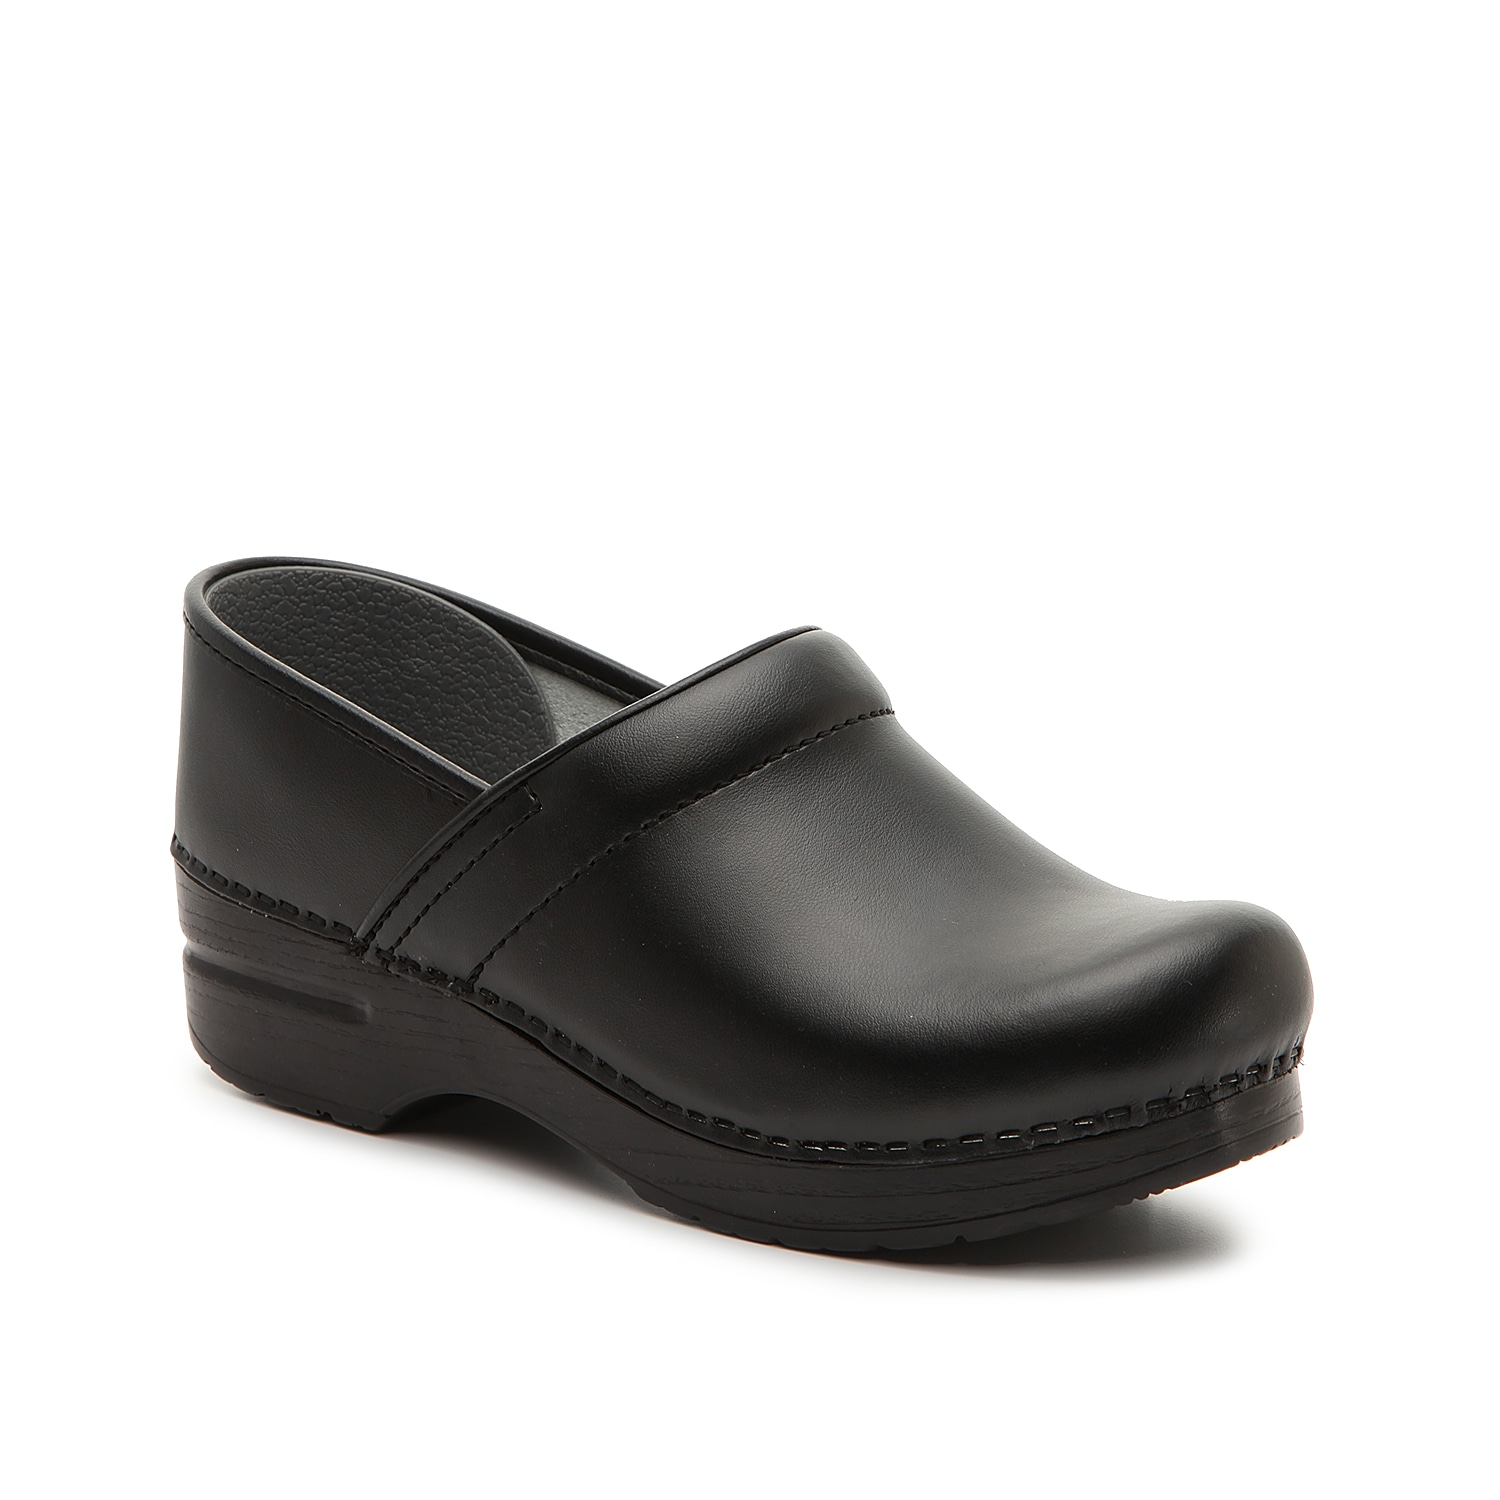 For a long day on your feet, feel supported when wearing the Professional clog from Dansko. This slip-on features a leather upper and a chunky midsole that will help keep you on your toes comfortably!